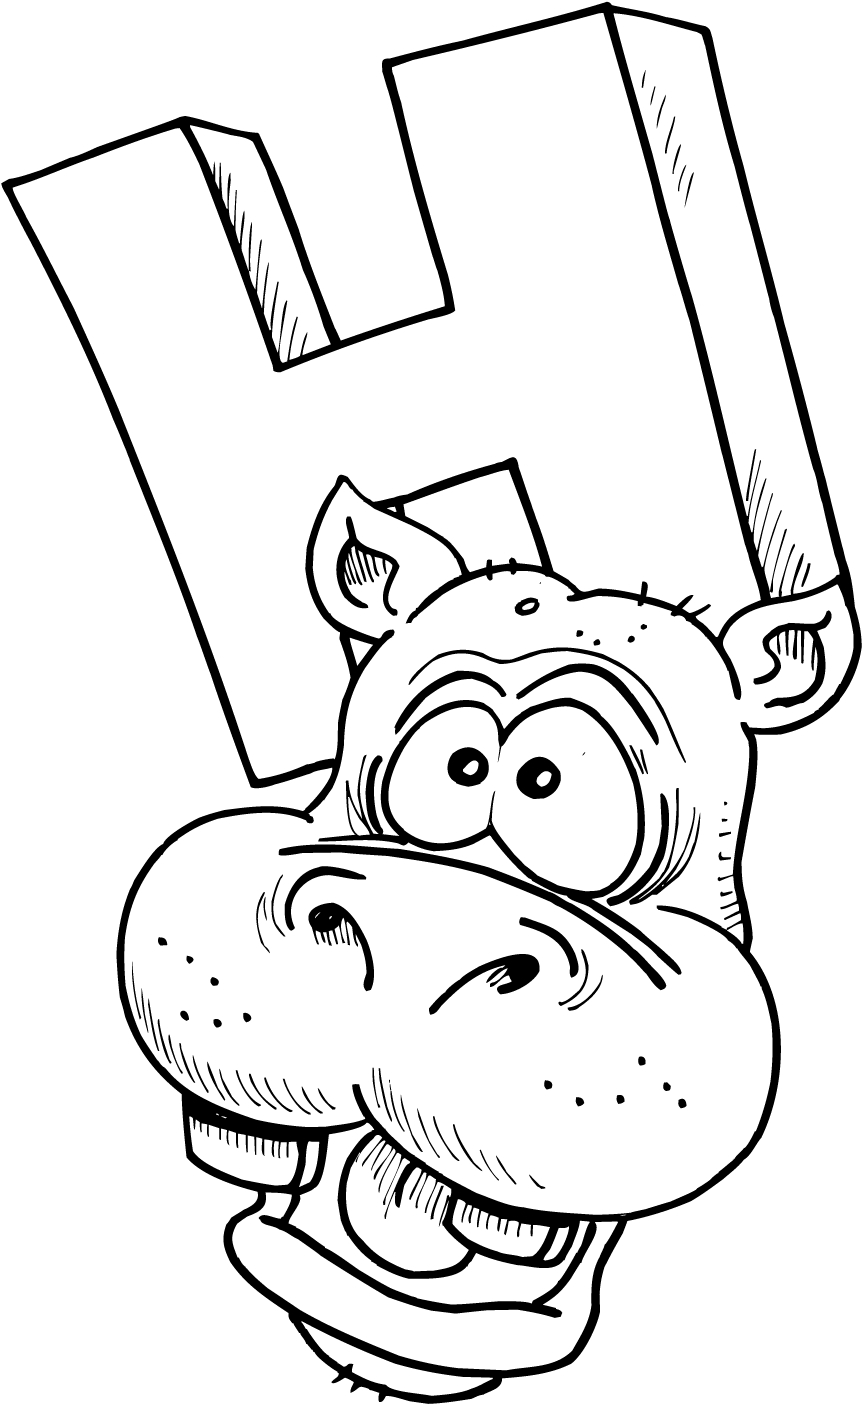 letter h coloring sheet letter h coloring pages to download and print for free letter coloring sheet h